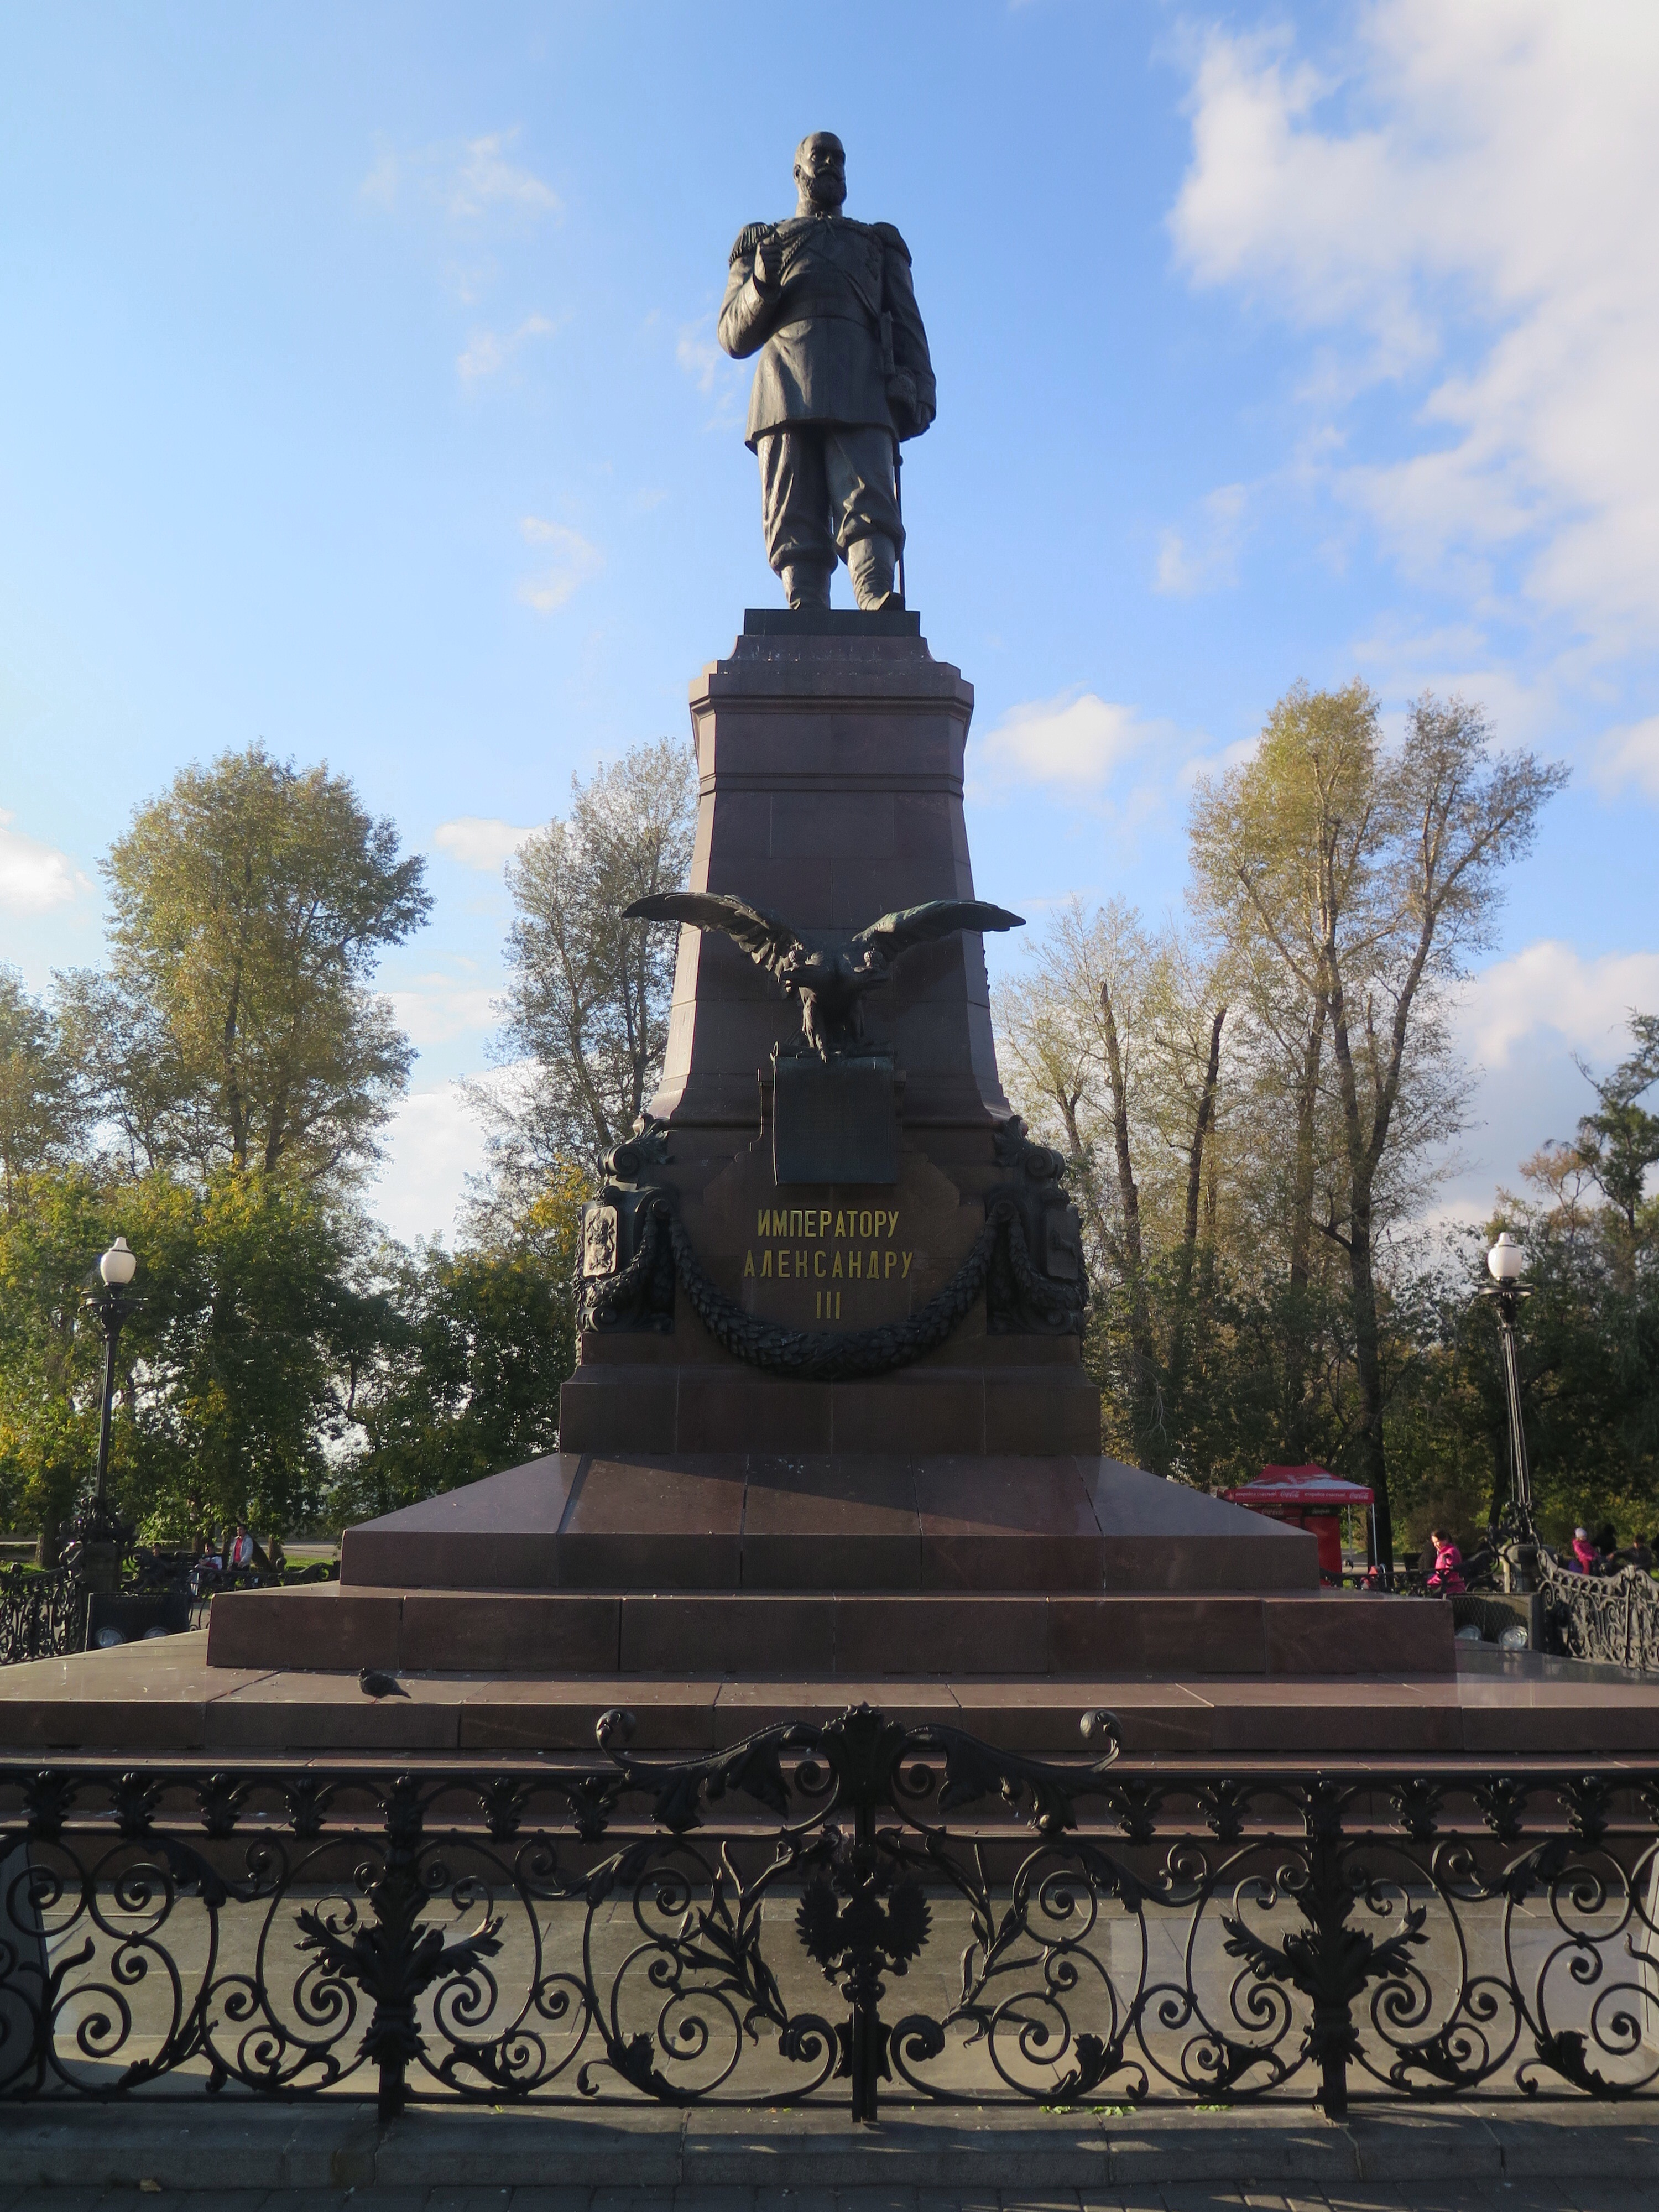 """This huge statue of Tsar Alexander III was outside the Regional Museum we visited, which had a sign describing Tsar Alexander's importance in the building of the Trans Siberian Railroad. On the map we got at our hotel, this monument was called something like """"The Trans-Siberian Railway Builder's Monument."""""""